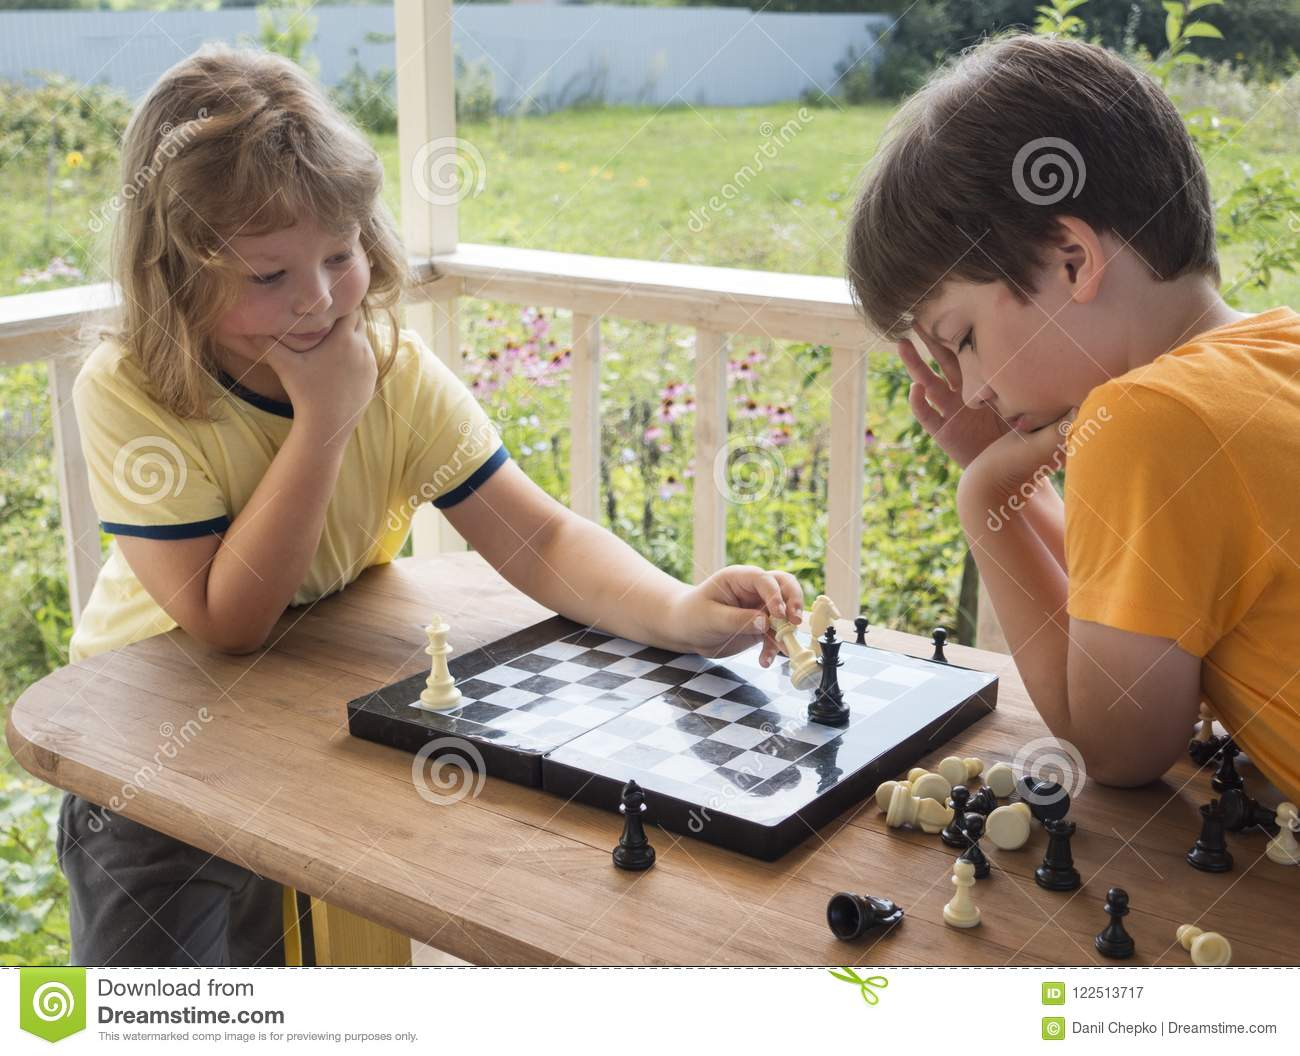 Download Child Playing Chess Outdors, Young Boy Making A Move Stock Image - Image of caucasian, learn: 122513717